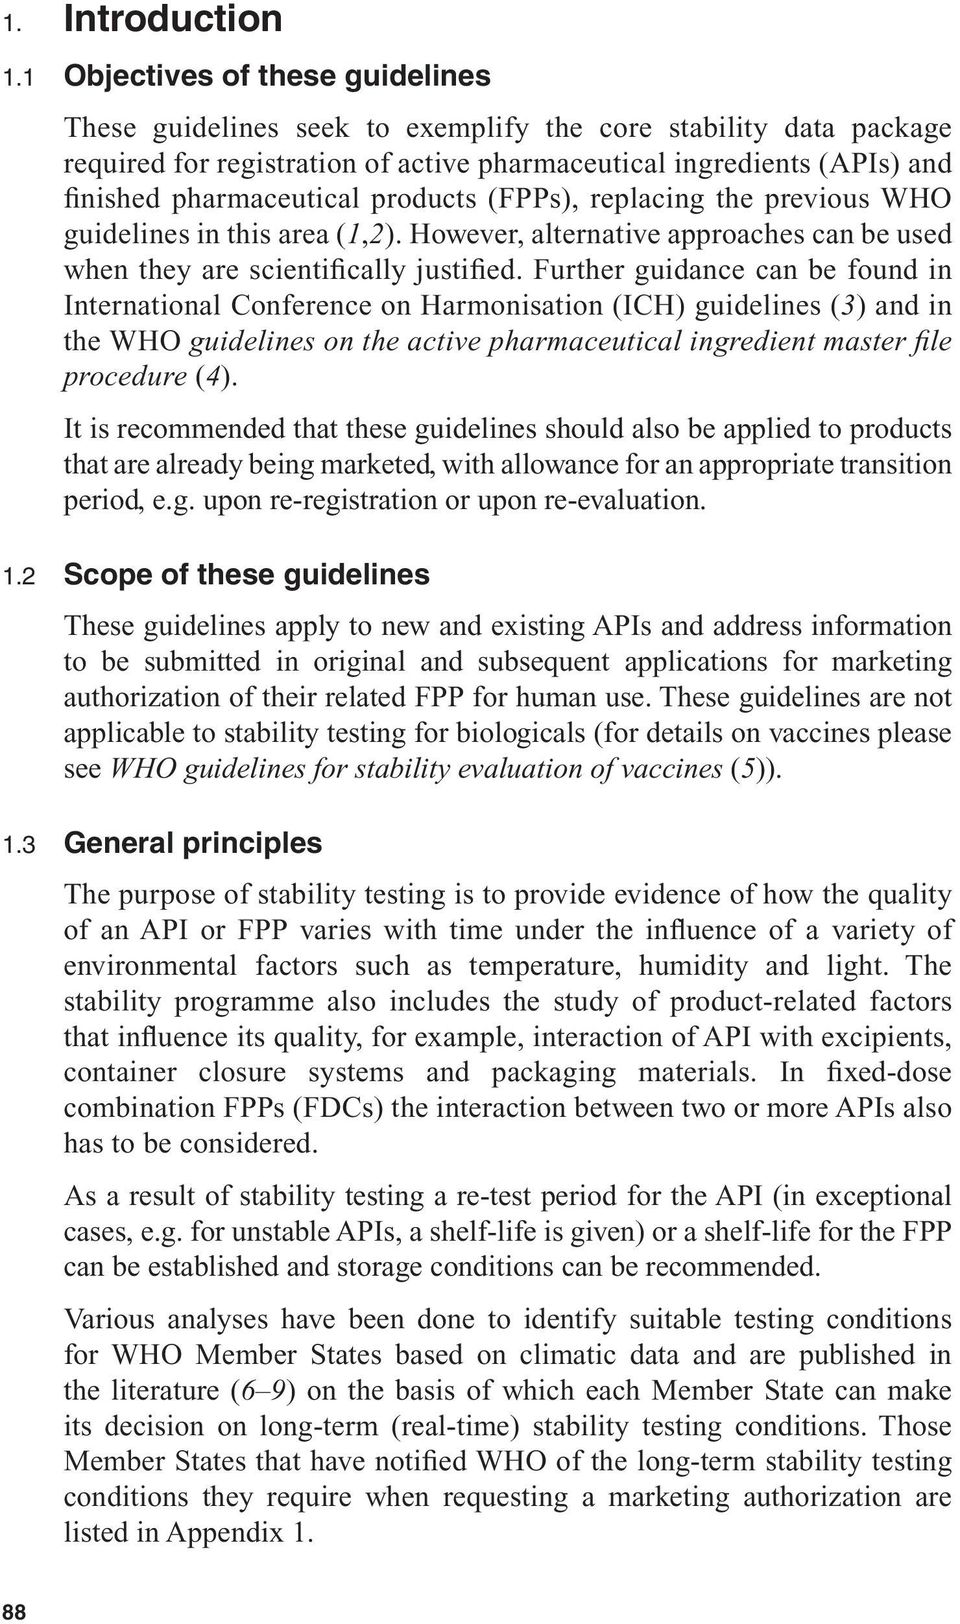 products (FPPs), replacing the previous WHO guidelines in this area (1,2). However, alternative approaches can be used when they are scientifically justified.